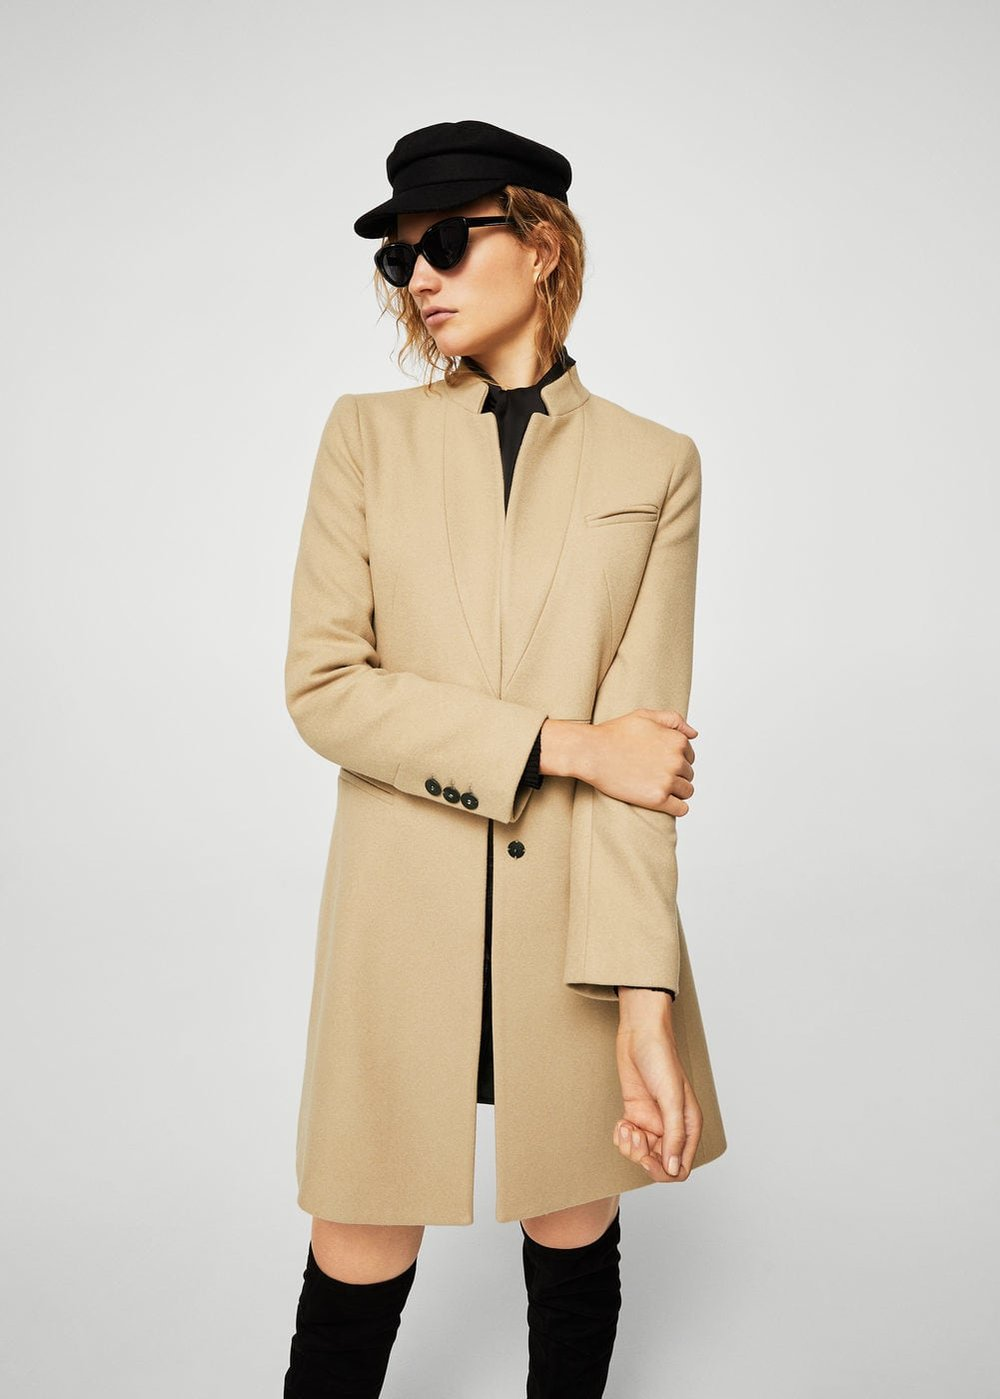 Pocketed Wool Coat, Mango, £139.99